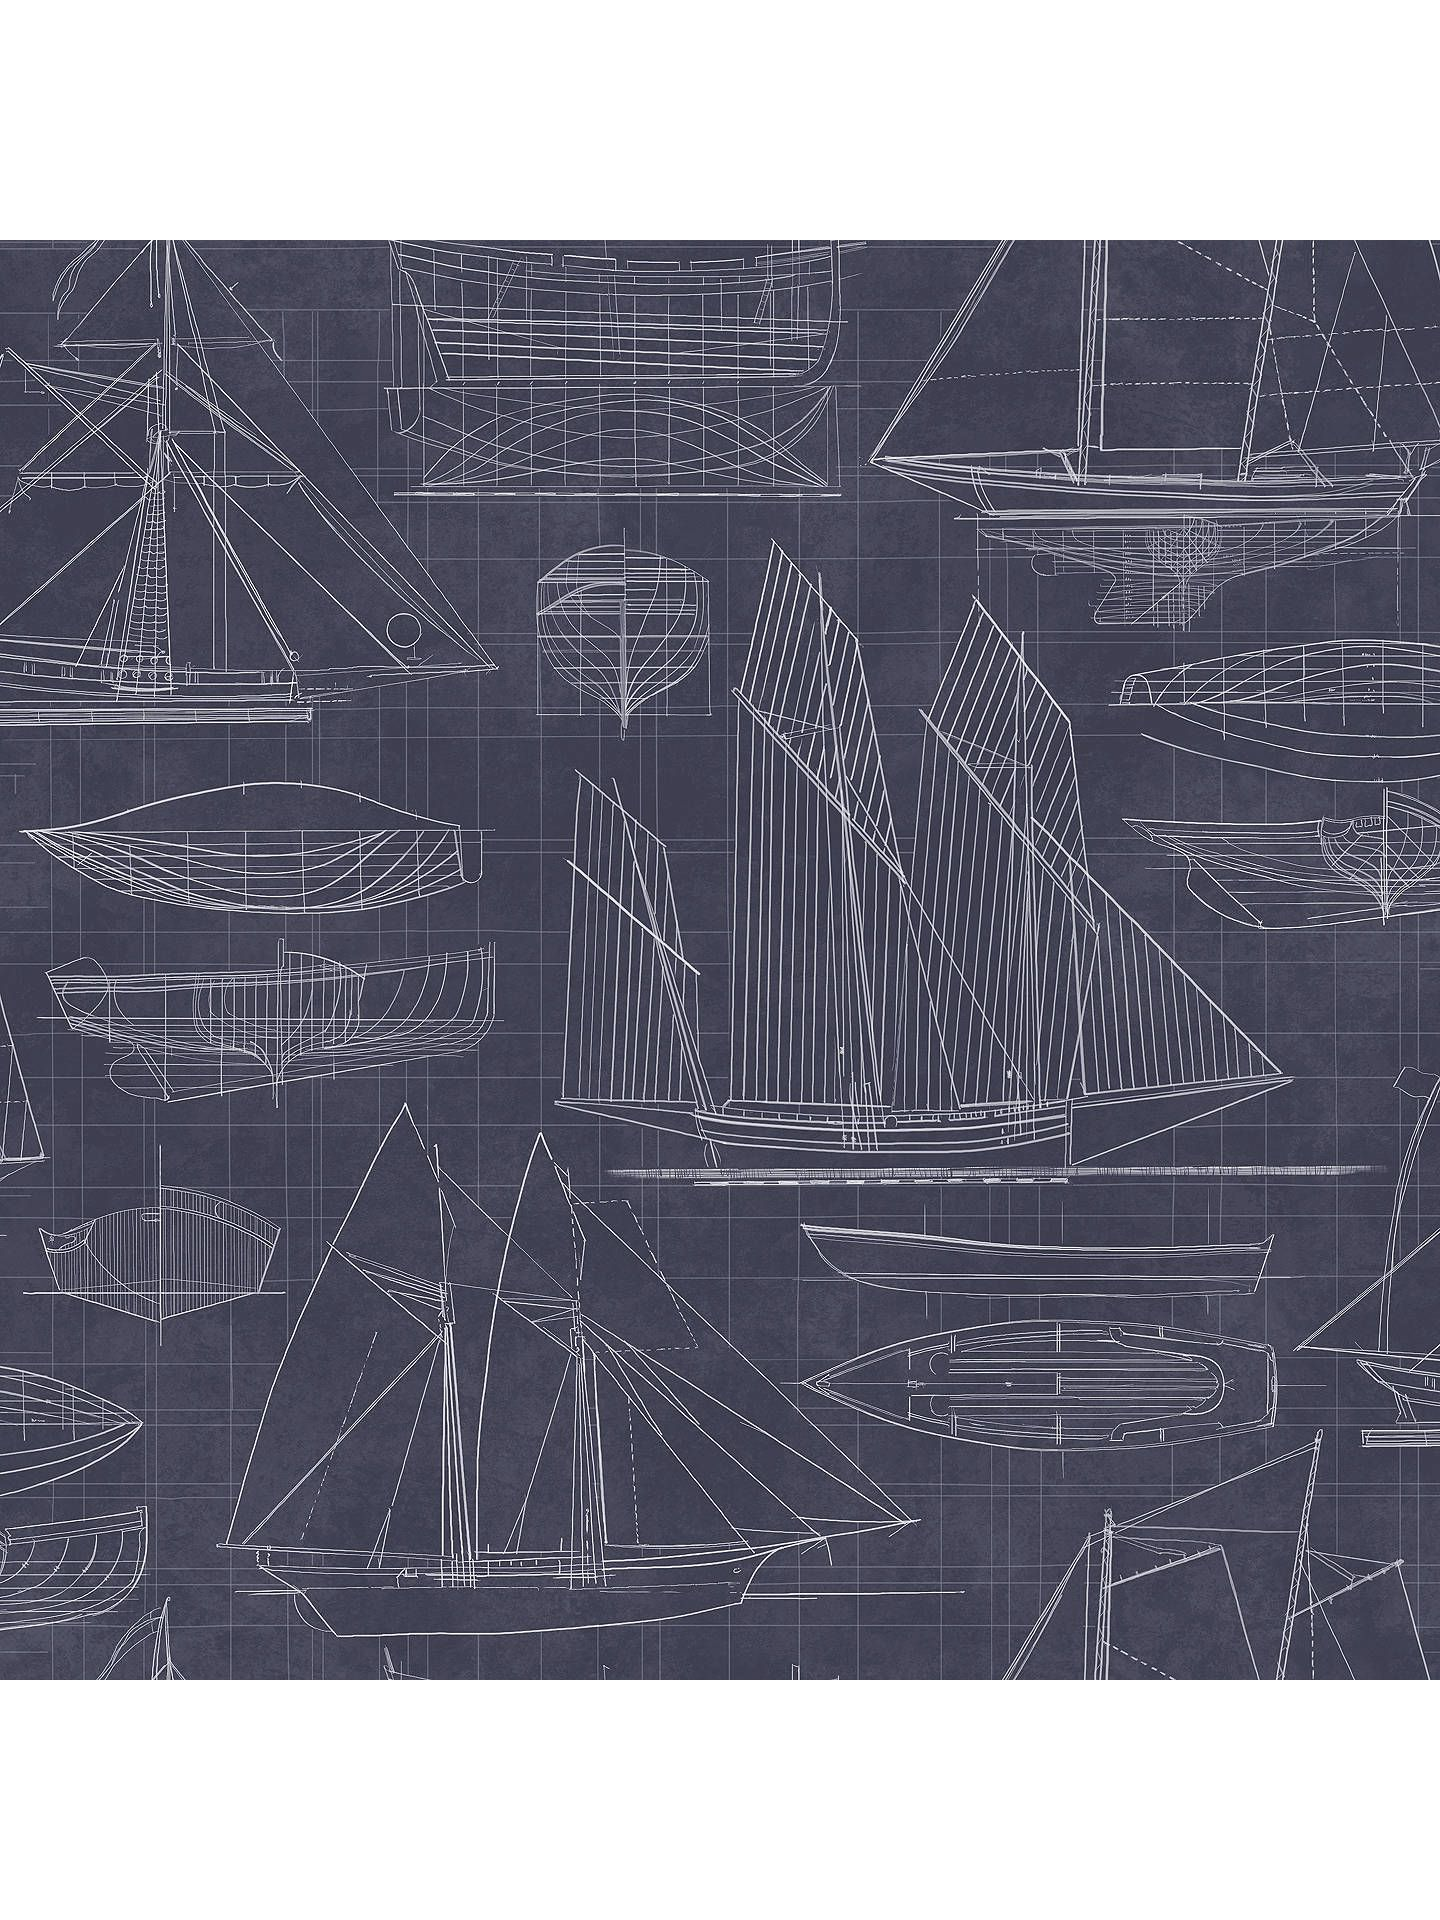 Deauville 2 Nautical Boats White Black Galerie Wallpaper G23323